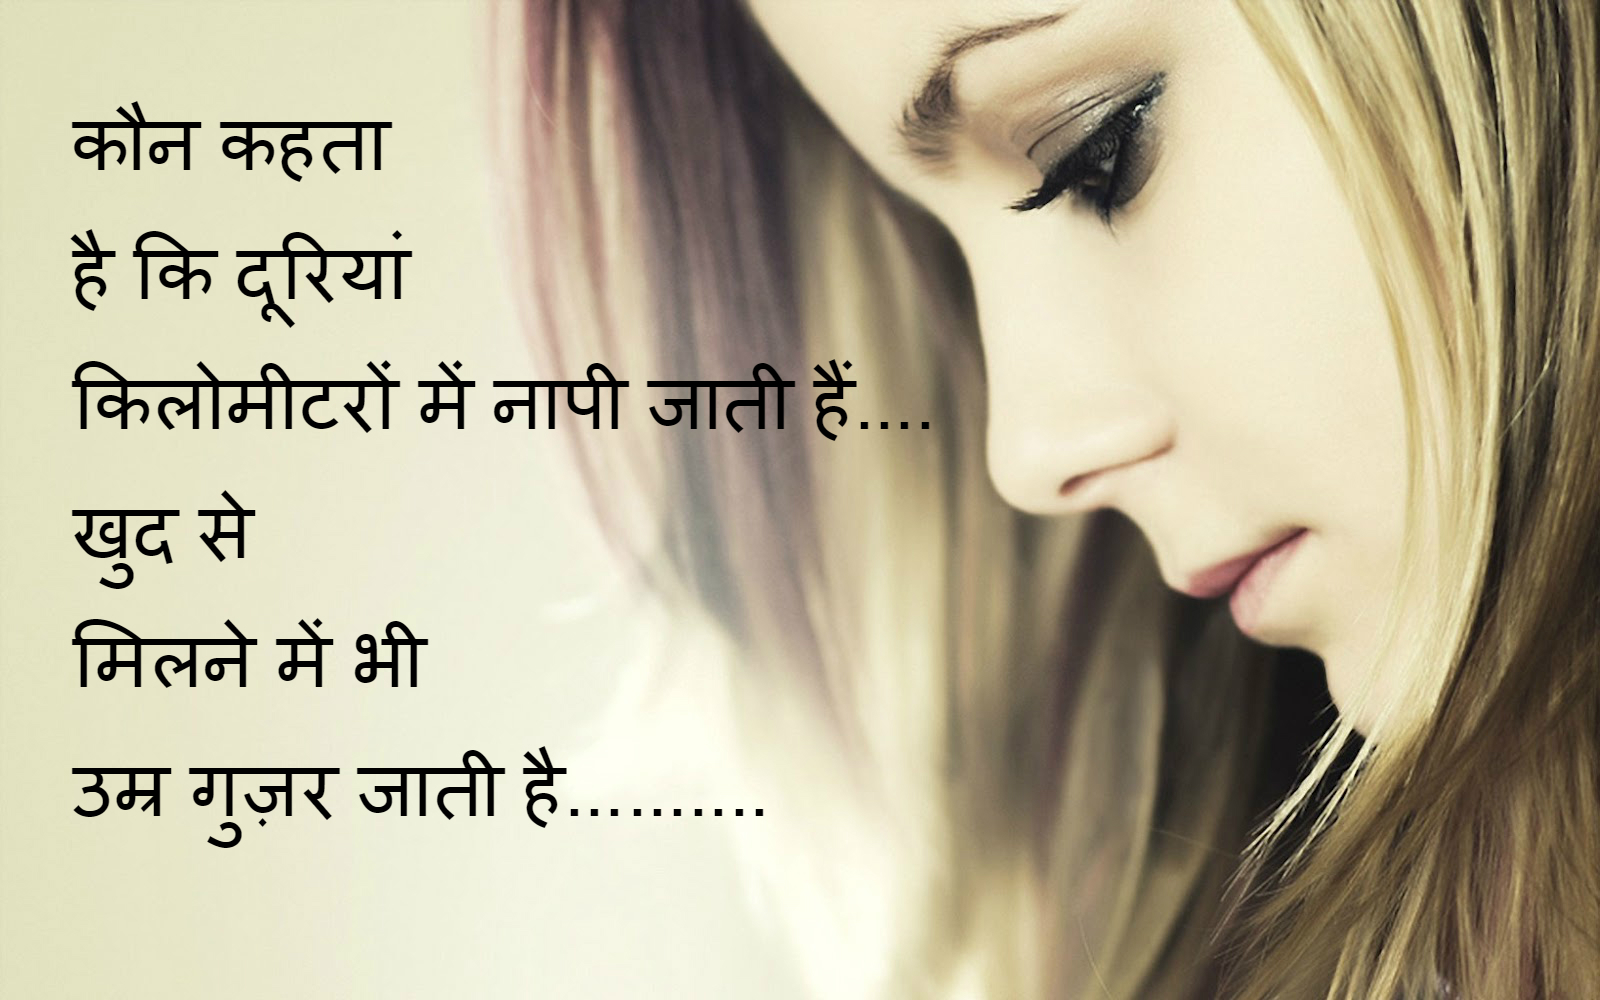 Wallpaper download love shayri - Wallpaper Download Love Shayri Wallpaper Download Love Shayri 50